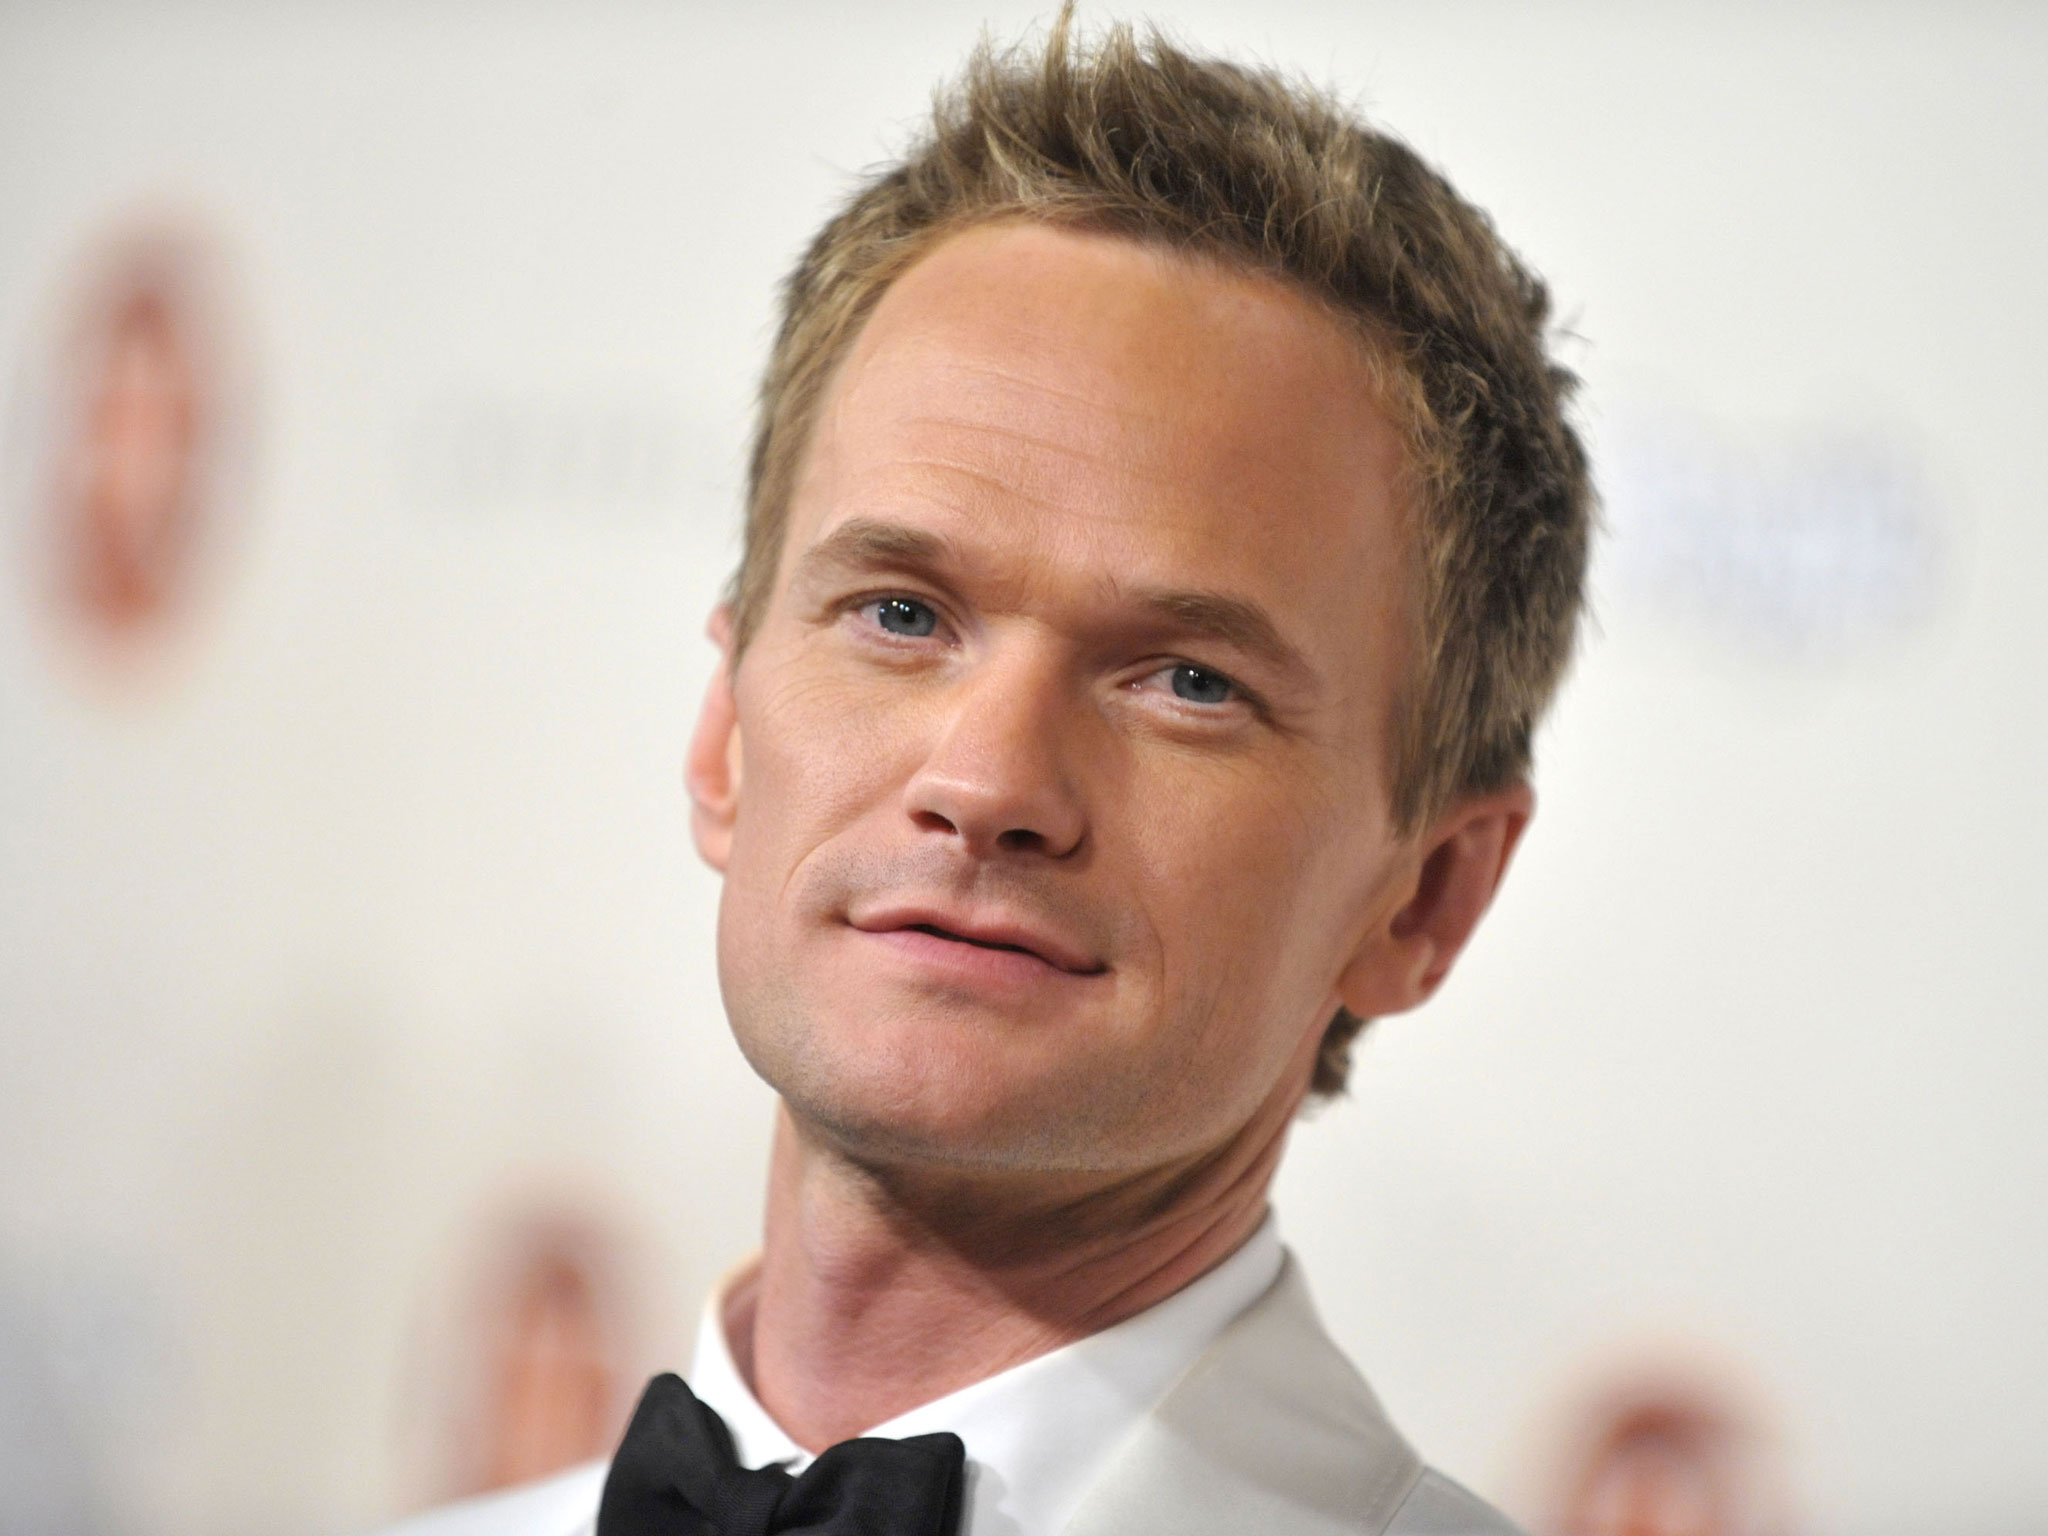 Oscars 2015: Who is Oscars host Neil Patrick Harris? - Profiles - People - The Independent